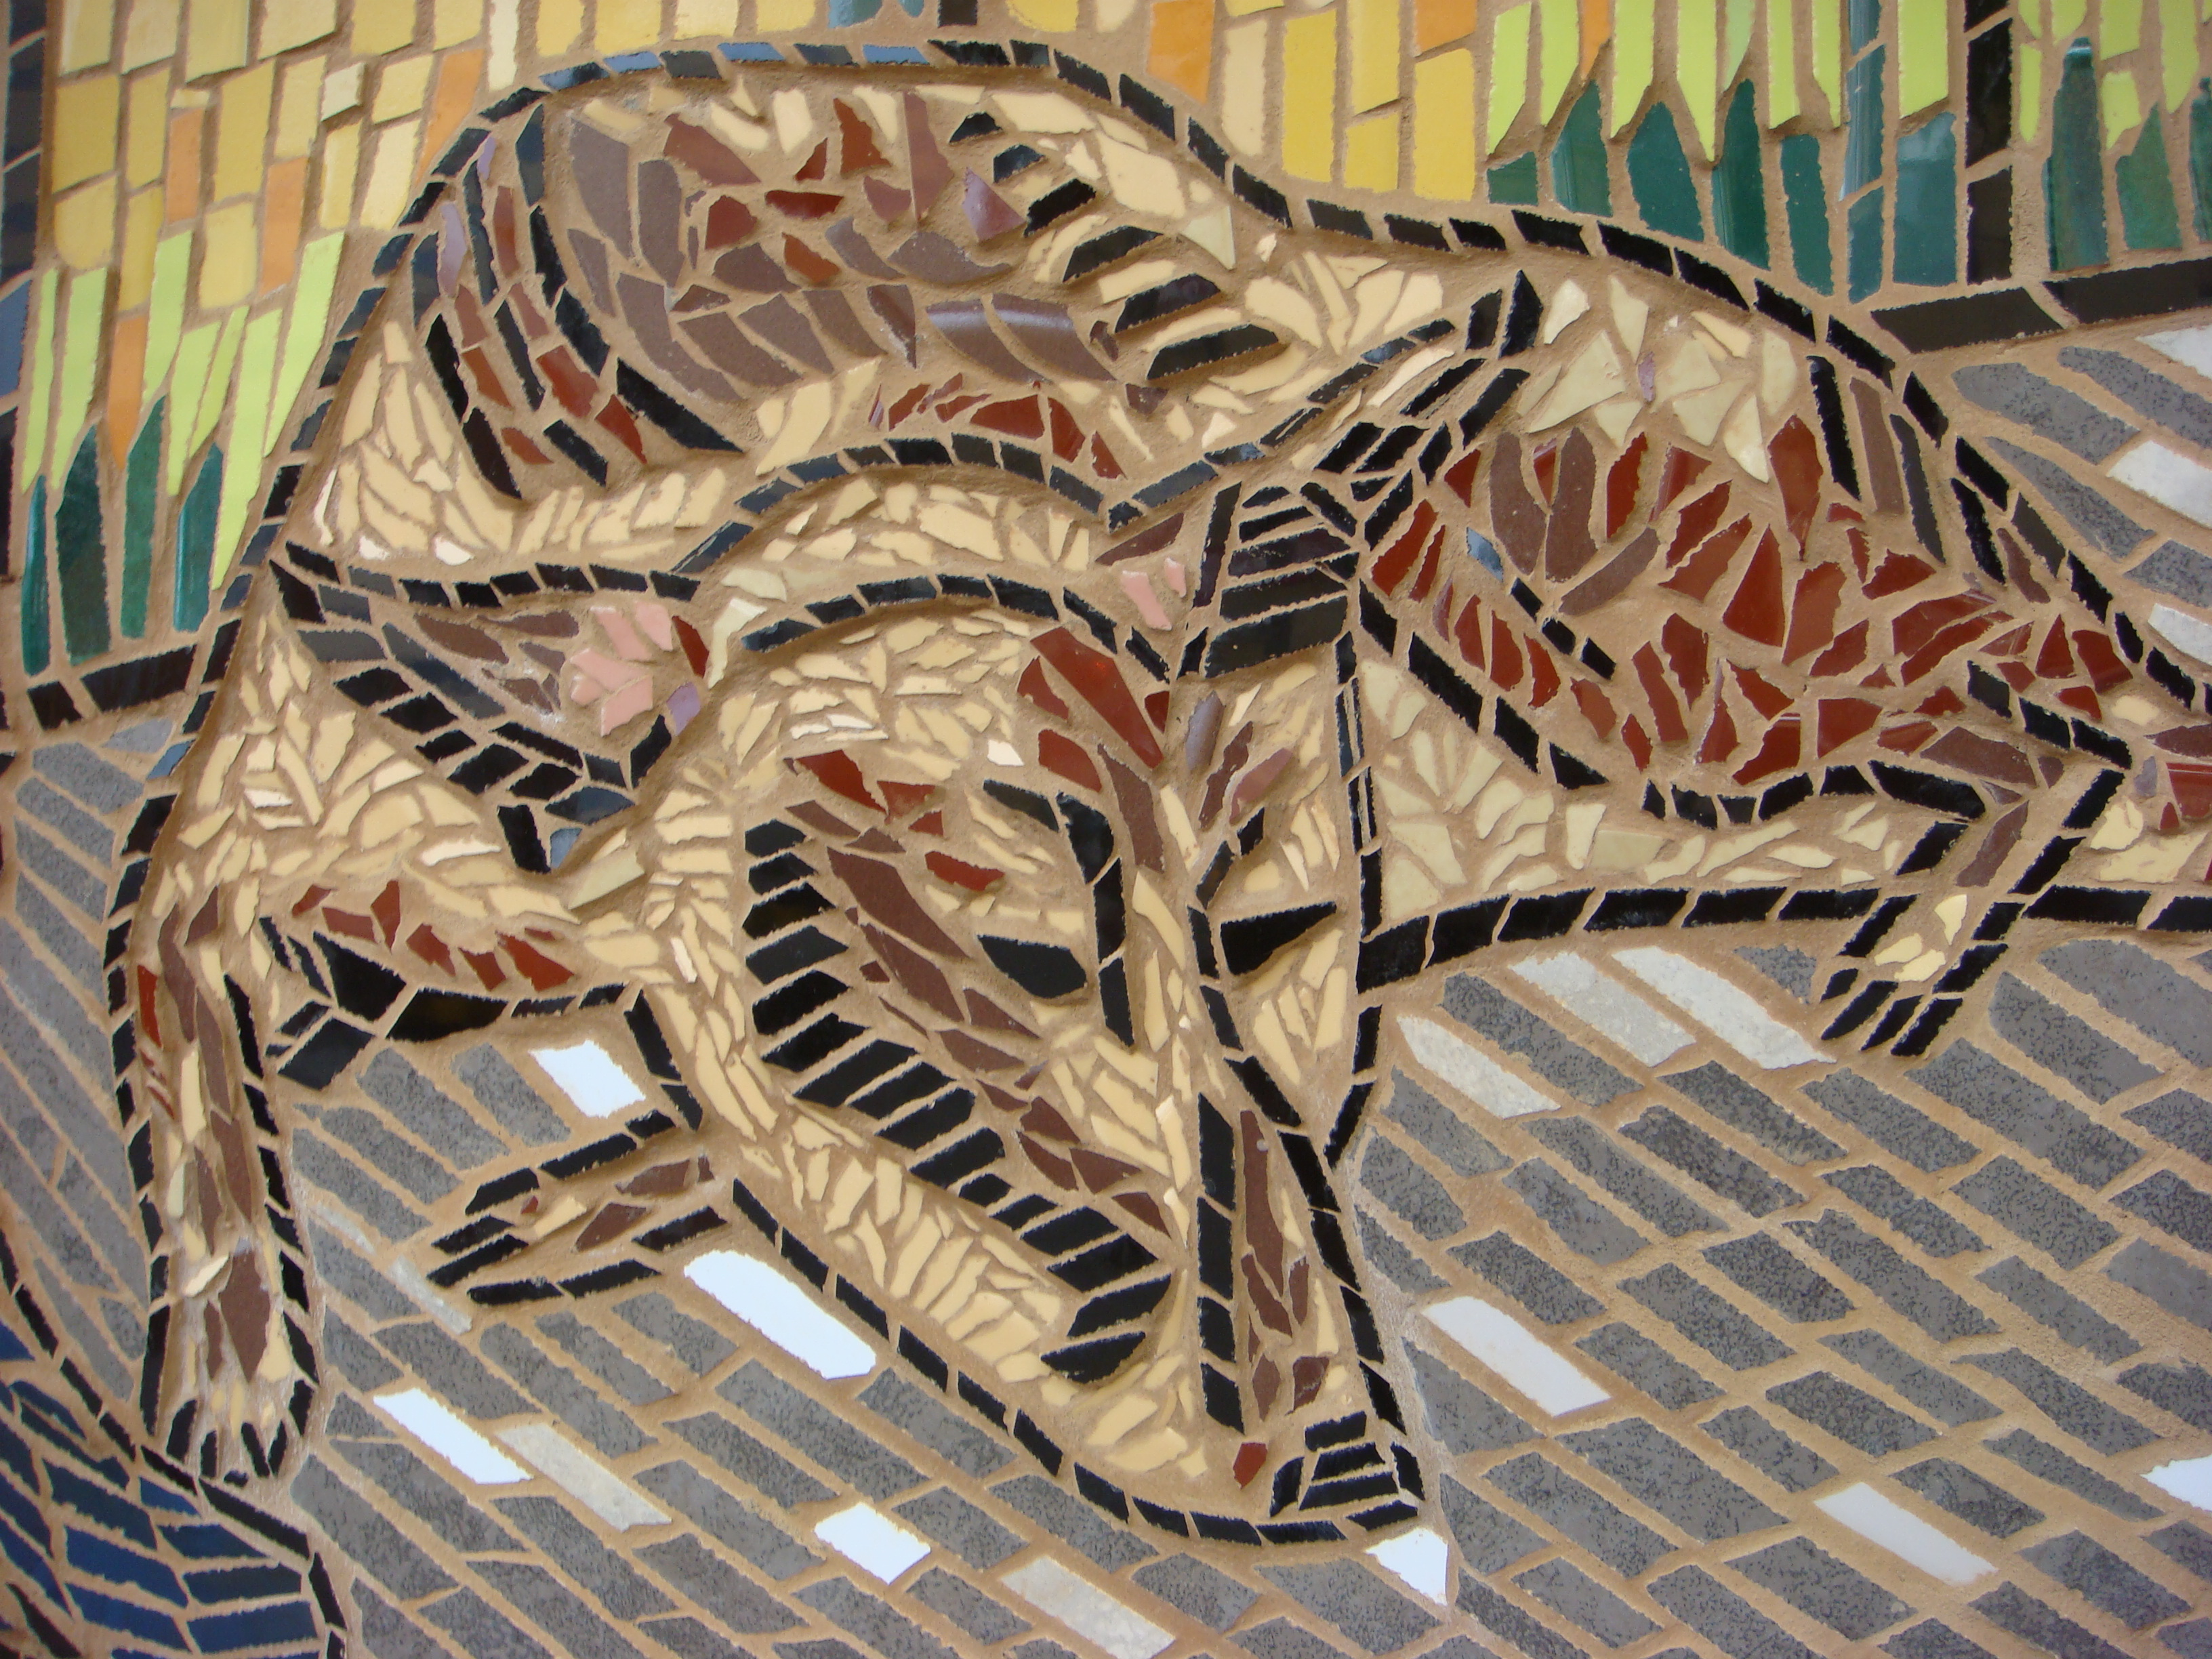 [Image description: A photograph showing the close-up of a tiled mosaic depicting a large dog coloured in reds and browns lying down on its stomach, against a green backdrop]